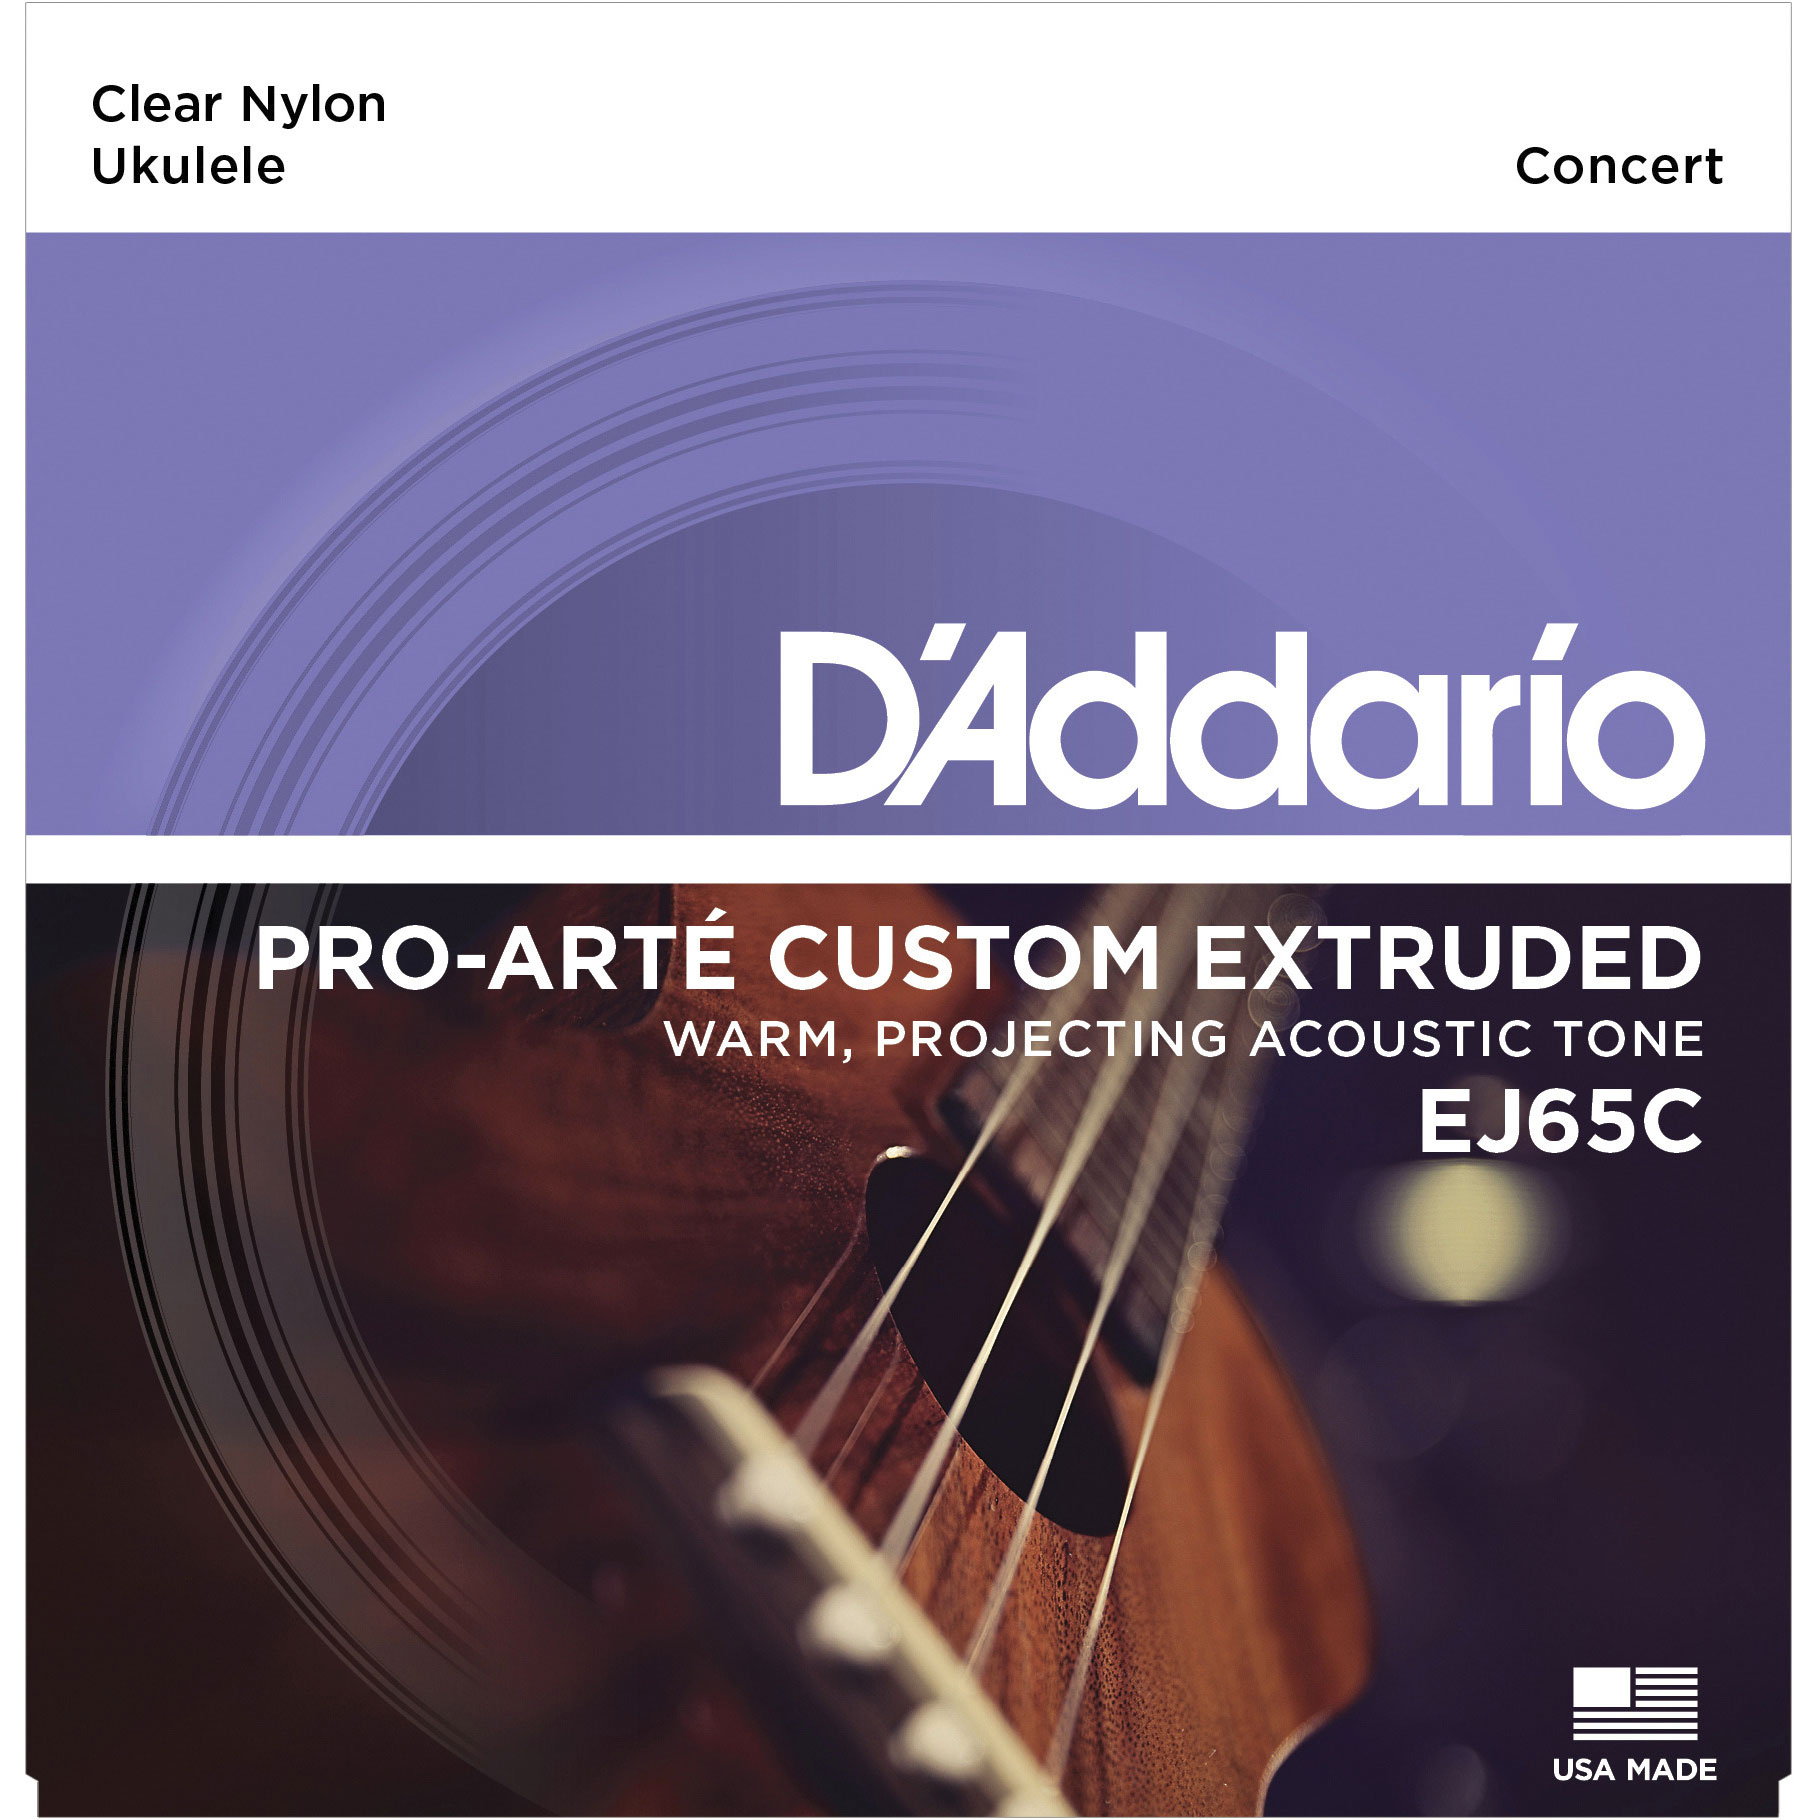 DADDARIO EJ65C PRO-ARTÉ CUSTOM EXTRUDED NYLON UKULELE STRINGS, CONCERT